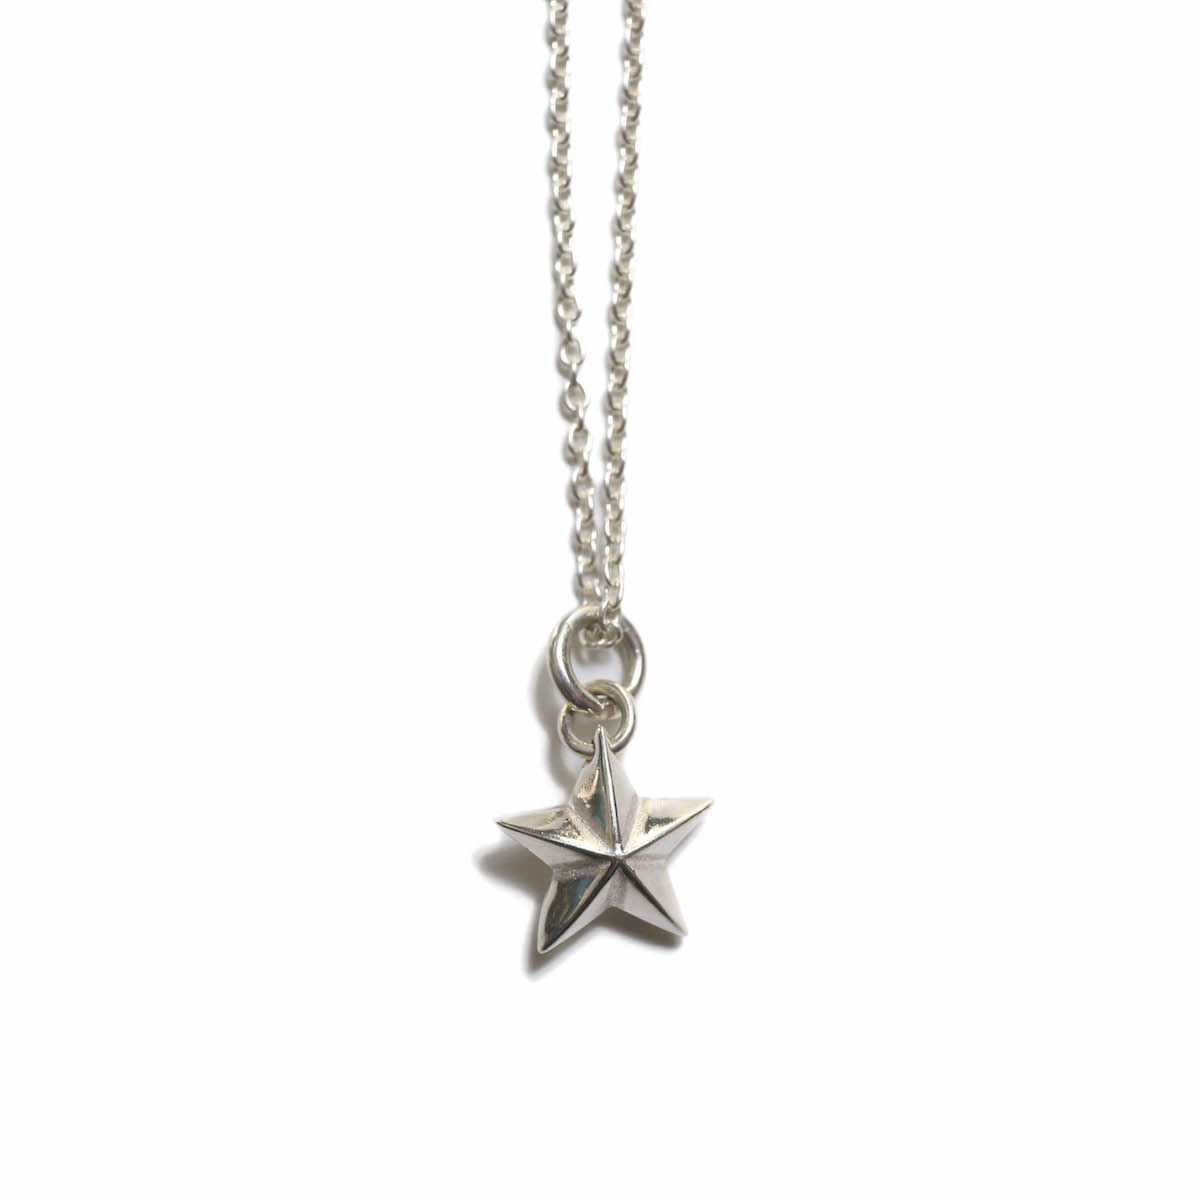 END / star charm necklace